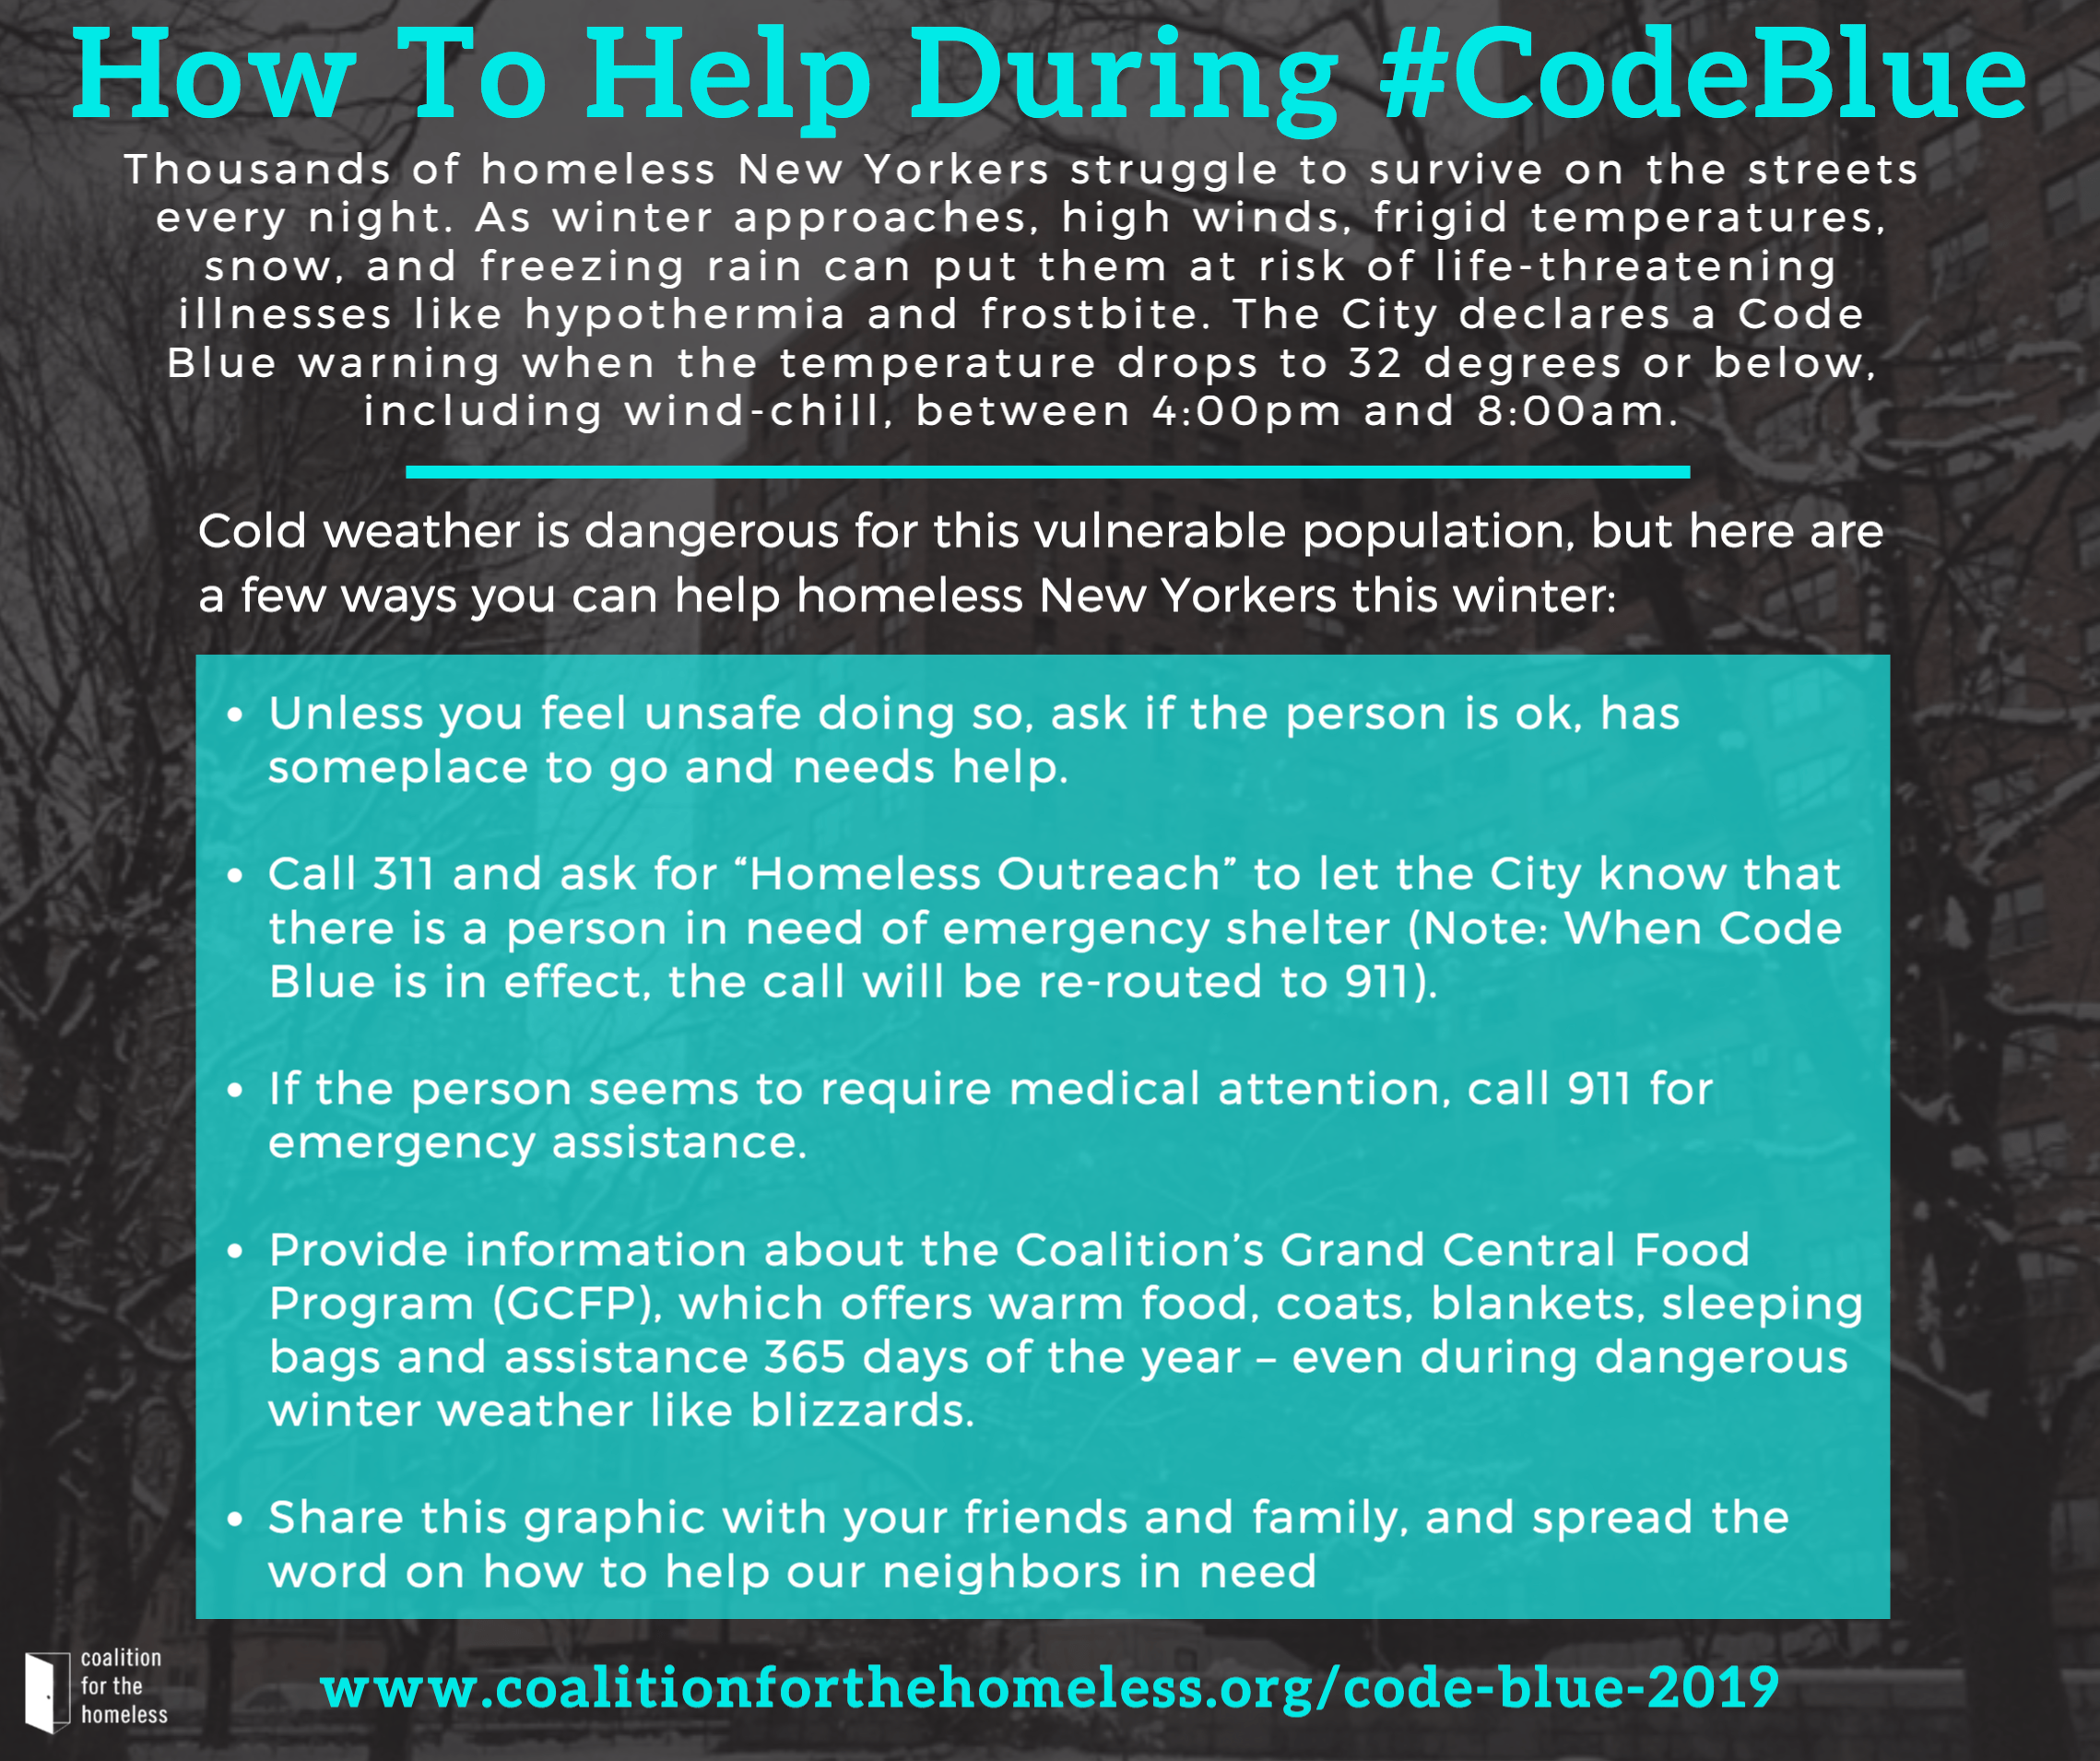 "Cold weather is dangerous for this vulnerable population, but here are a few ways you can help homeless New Yorkers this winter: Unless you feel unsafe doing so, ask if the person is ok, has someplace to go and needs help. Call 311 and ask for ""Homeless Outreach"" to let the City know that there is a person in need of emergency shelter (Note: When Code Blue is in effect, the call will be re-routed to 911). If the person seems to require medical attention, call 911 for emergency assistance. Provide information about the Coalition's Grand Central Food Program (GCFP), which offers warm food, coats, blankets, sleeping bags, and assistance 365 days of the year – even during dangerous winter weather like blizzards. Click here for a list of stops. Share this graphic with your friends and family, and spread the word on how to help our neighbors in need:"